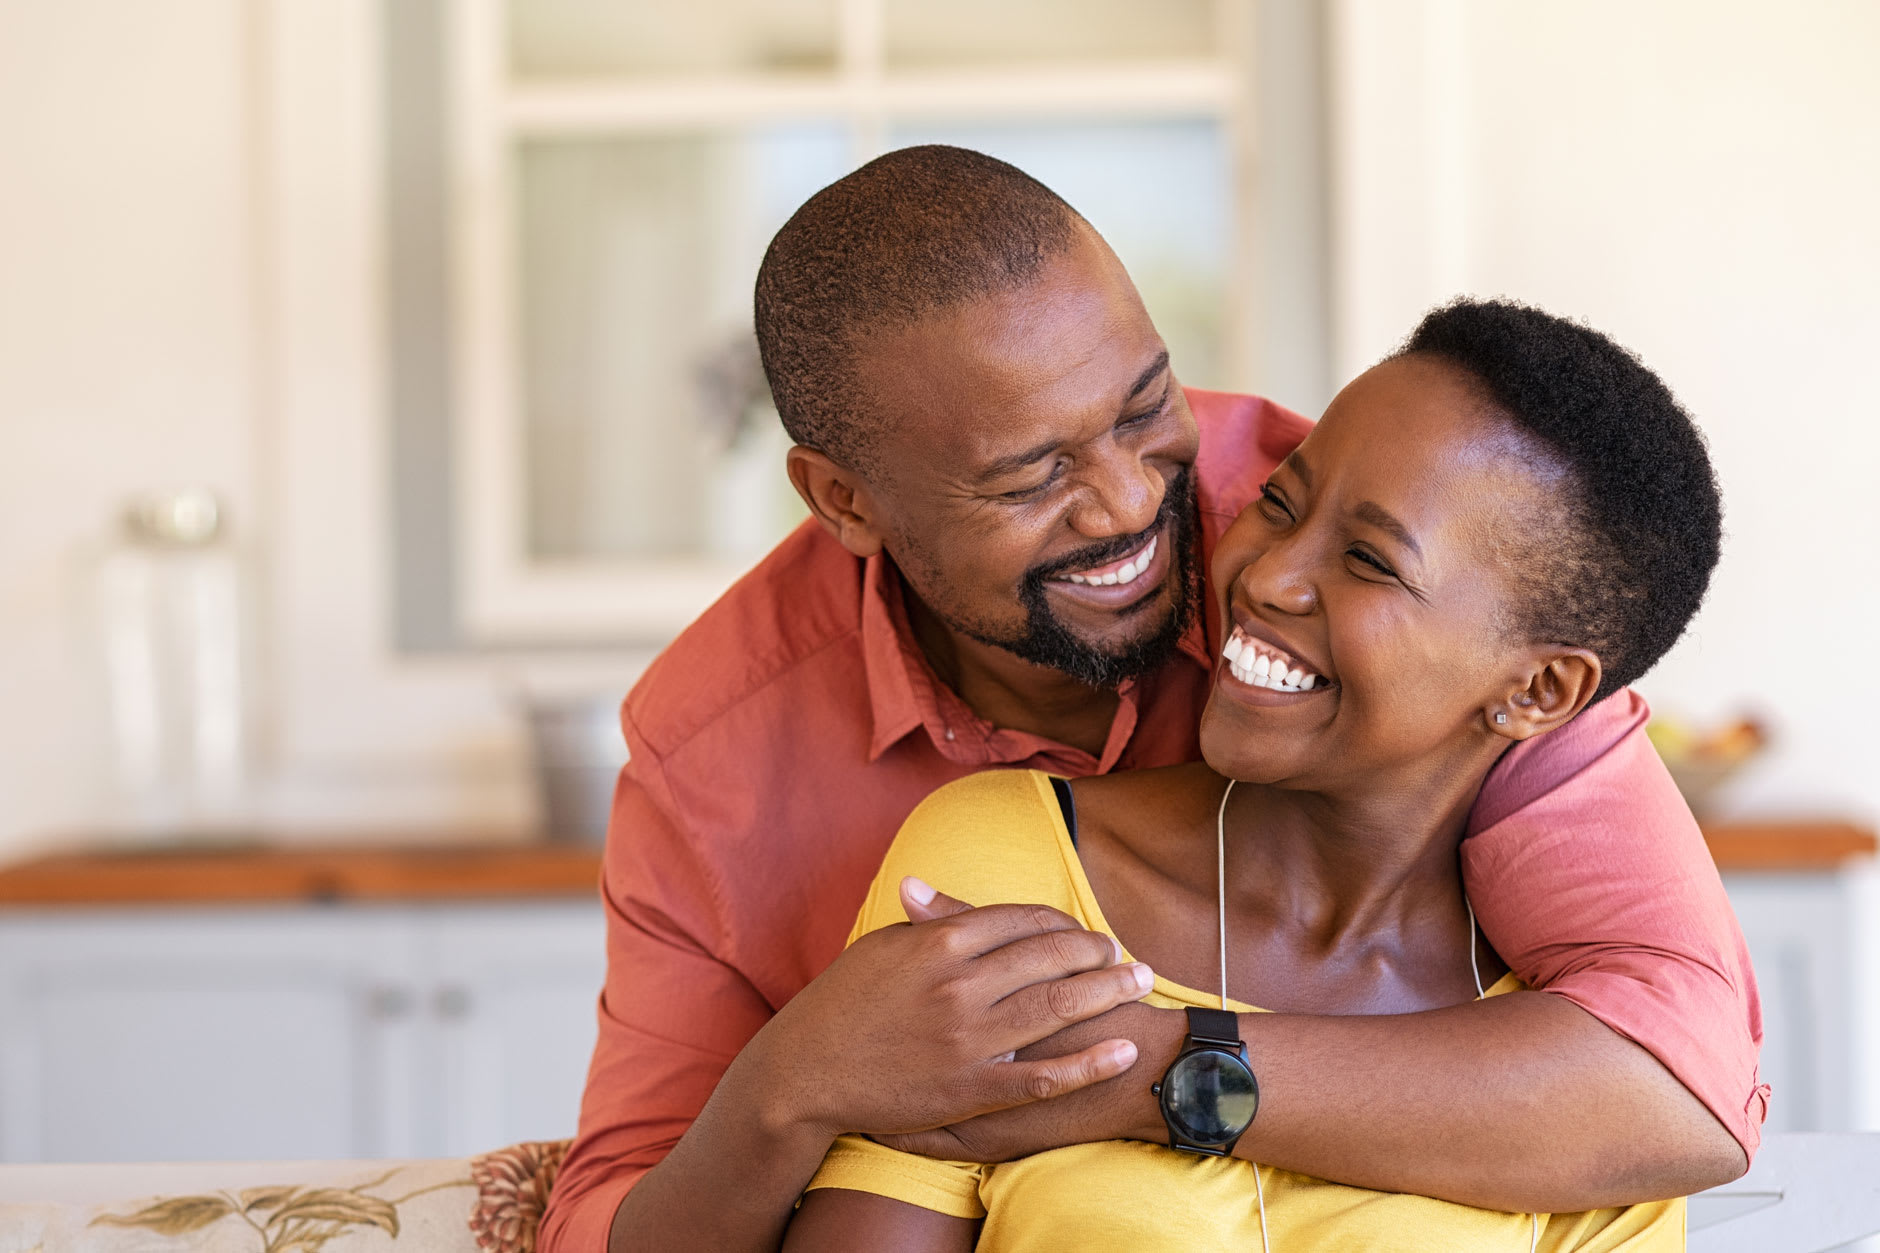 A couple in their 40s are hugging and smiling, the woman is wearing dentures, but is happy and confident because thanks to Fixodent, she knows how denture adhesive works.